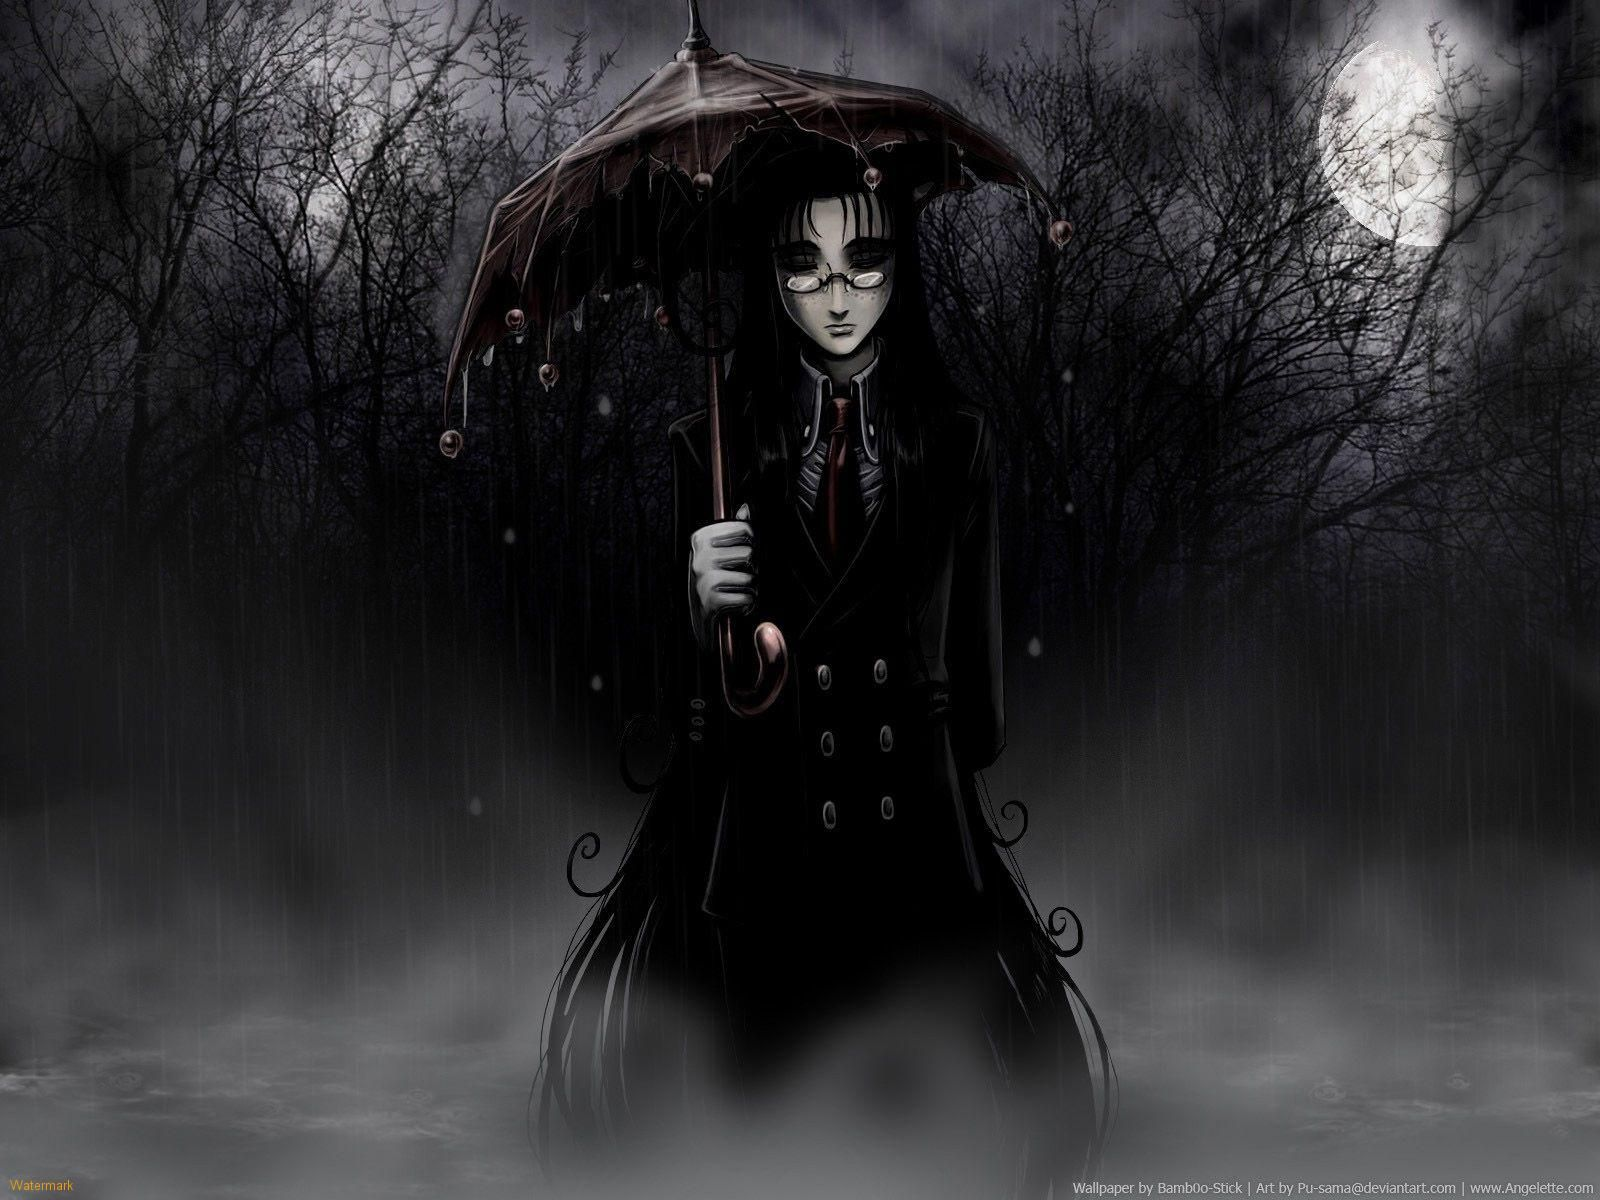 That Umbrella Looks Quite Neat Goth Wallpaper Black Background Wallpaper Mobile Wallpaper